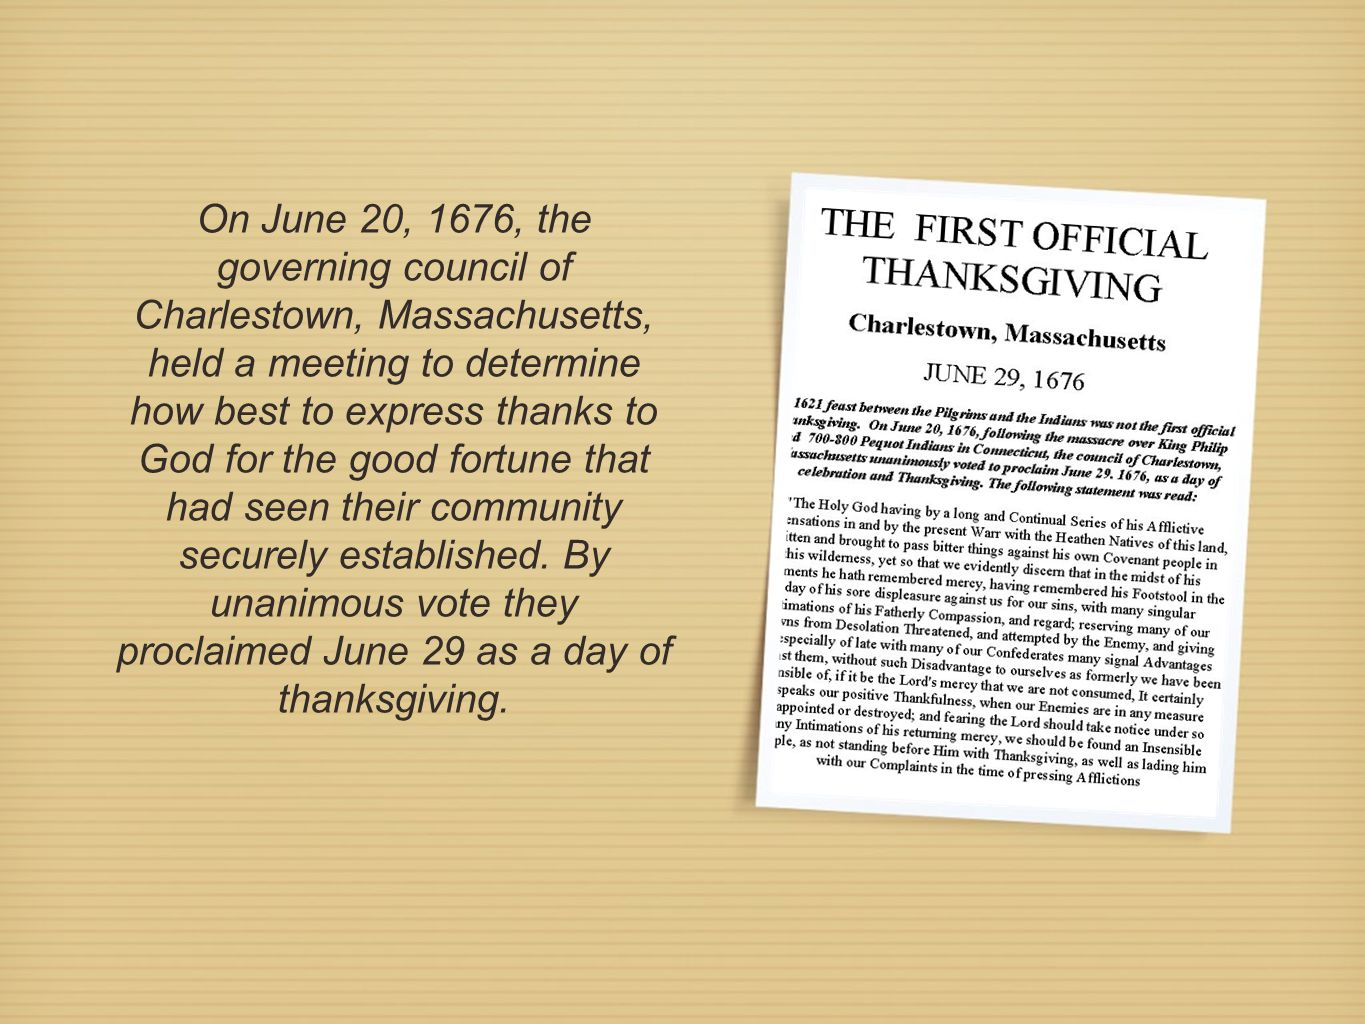 On June 20, 1676, the governing council of Charlestown, Massachusetts, held a meeting to determine how best to express thanks to God for the good fortune that had seen their community securely established.